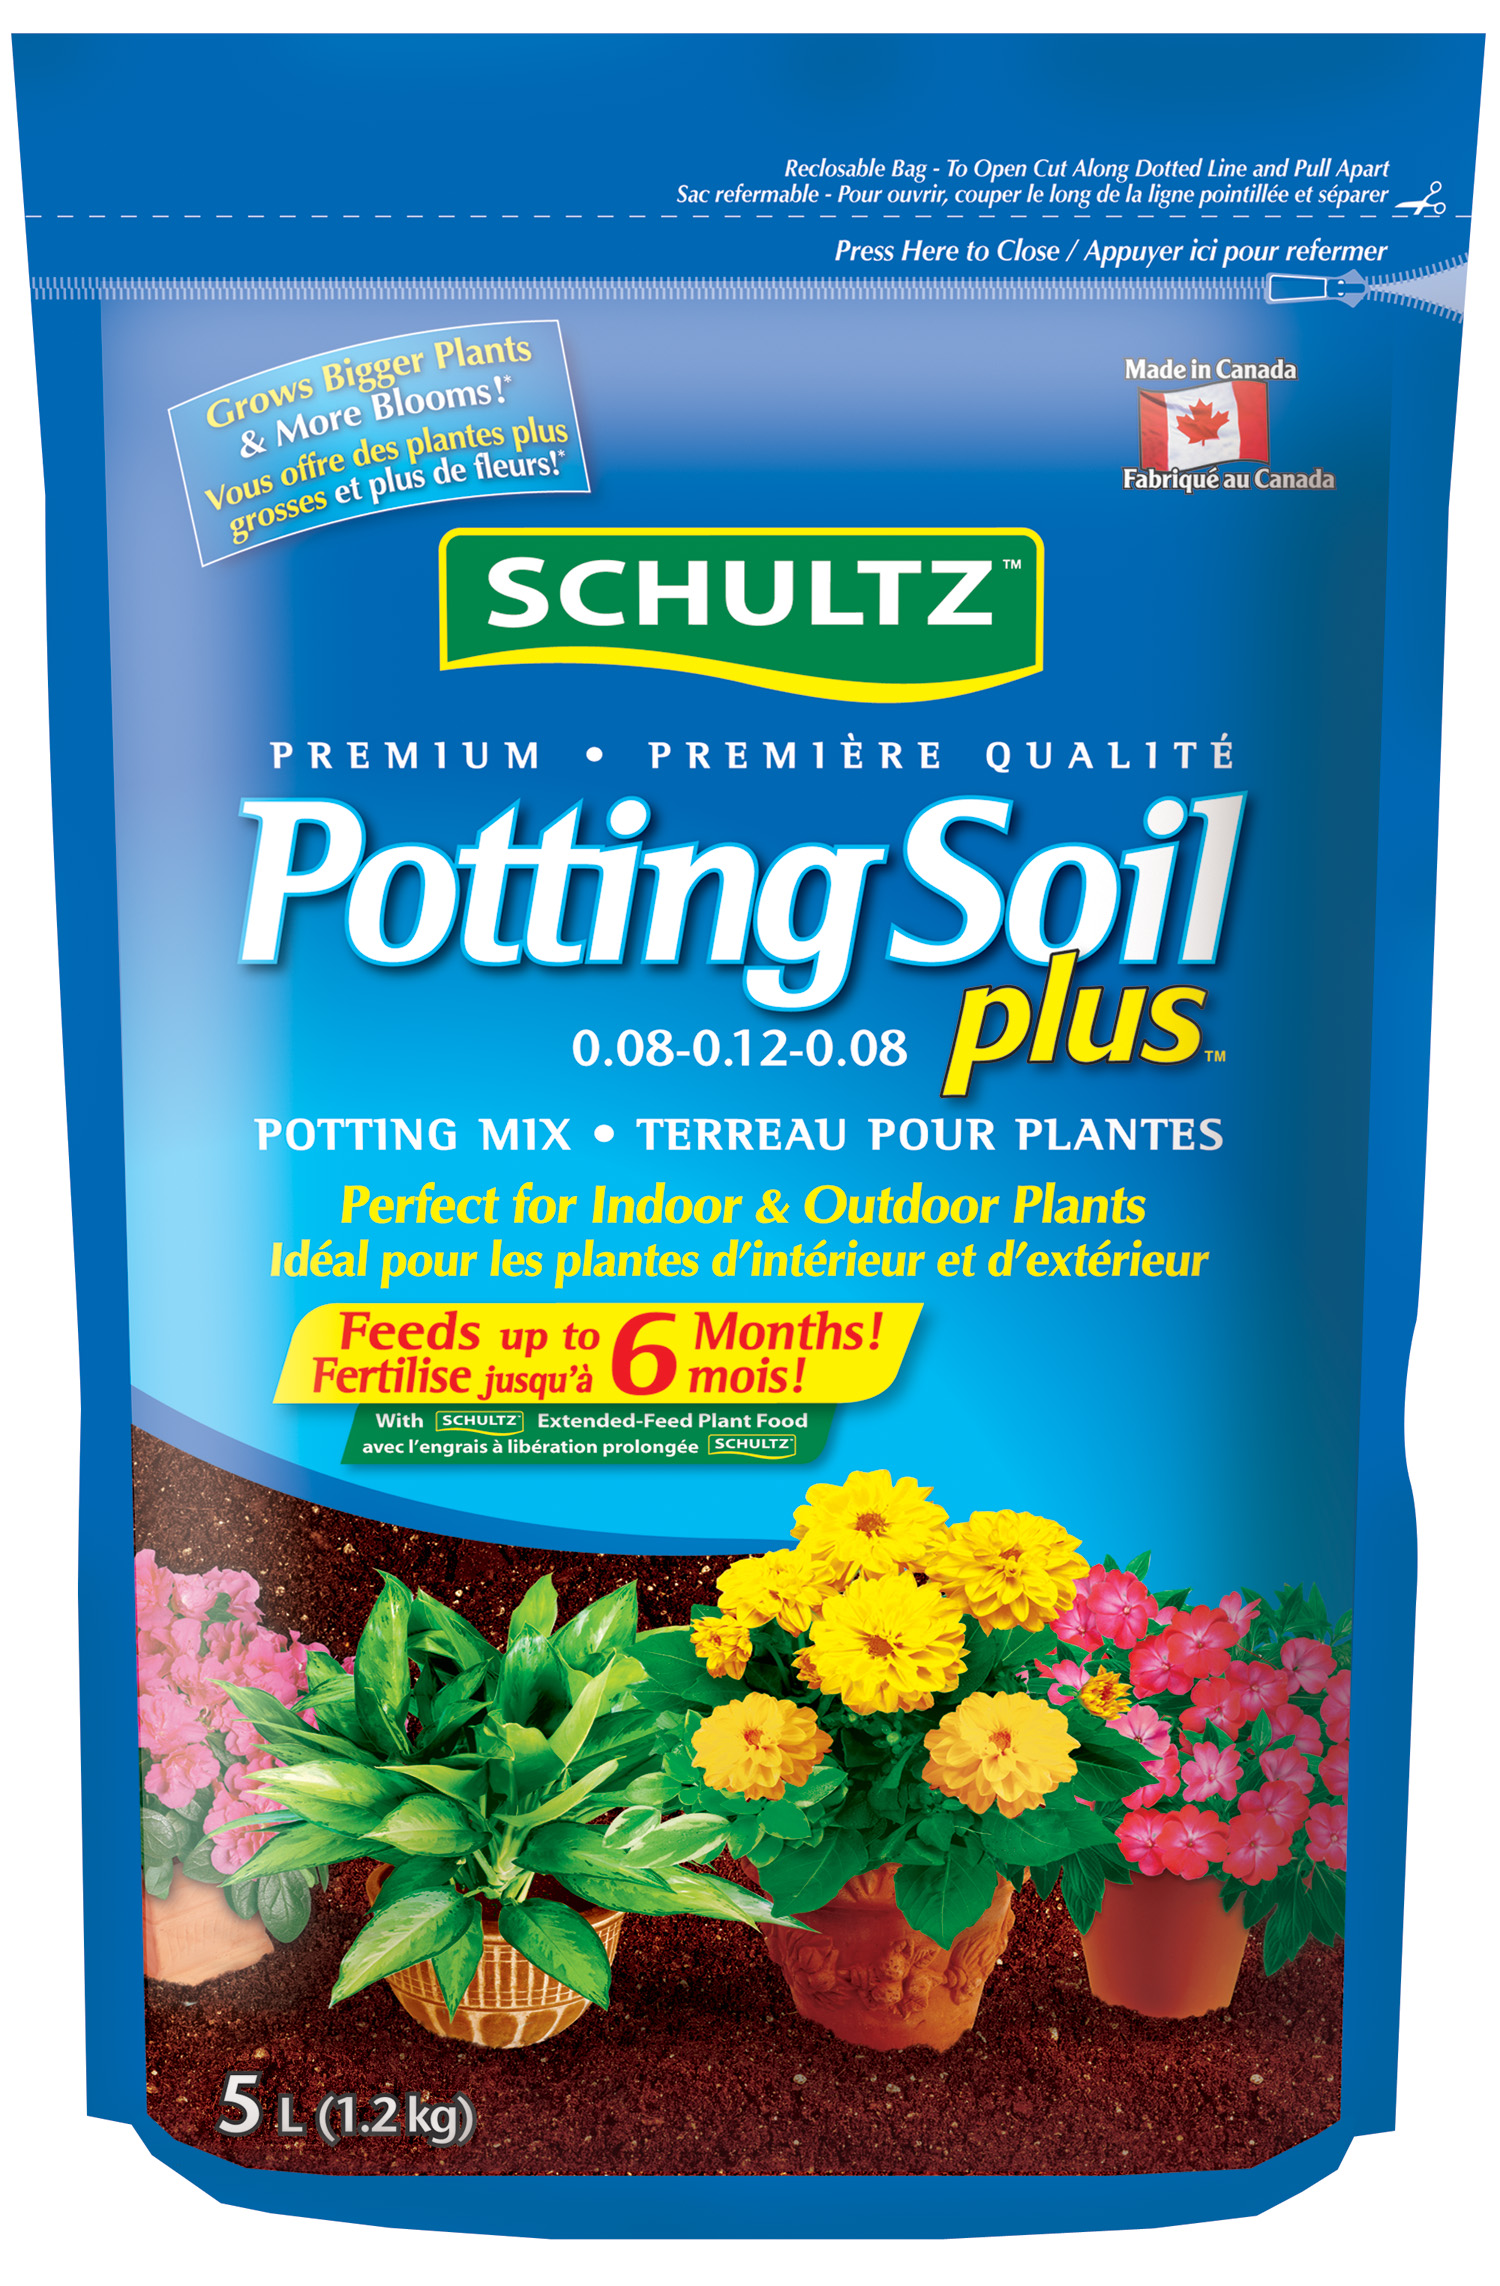 1800360 Schultz Potting Soil Plus 5L Hi Res EF_RGBweb